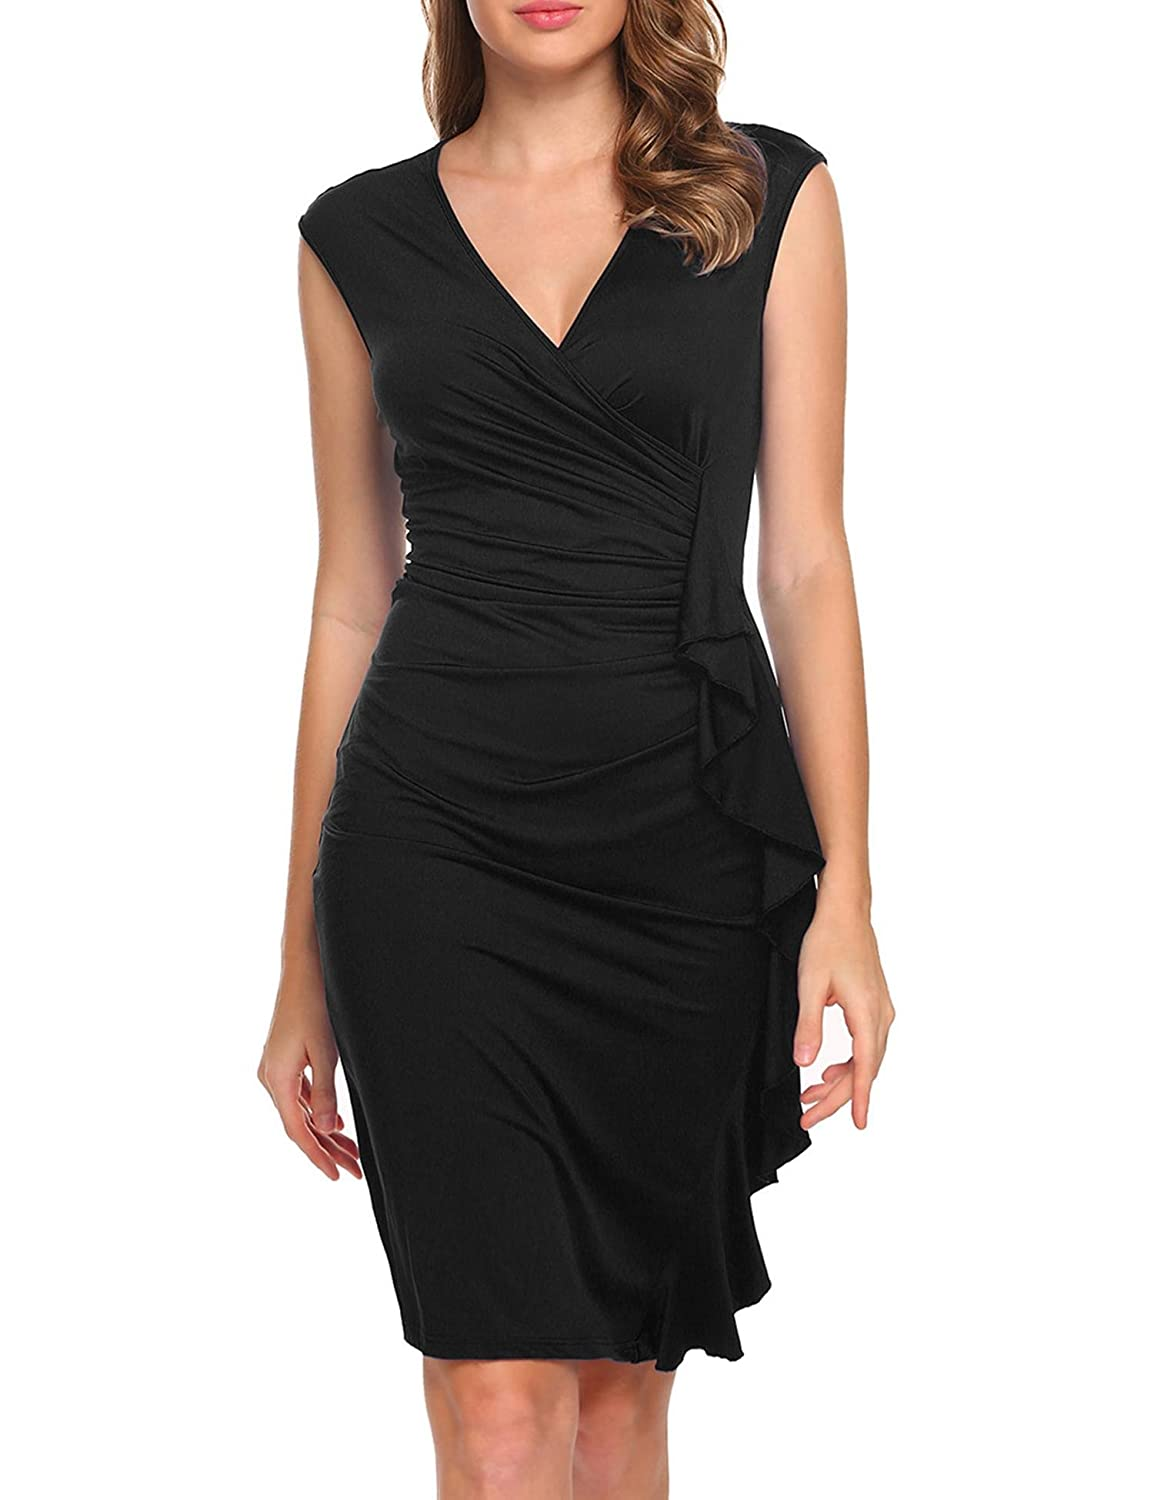 ACEVOG Women's V-Neck Sleeveless Ruffles Draped Bodycon Party Pencil Wrap Dress